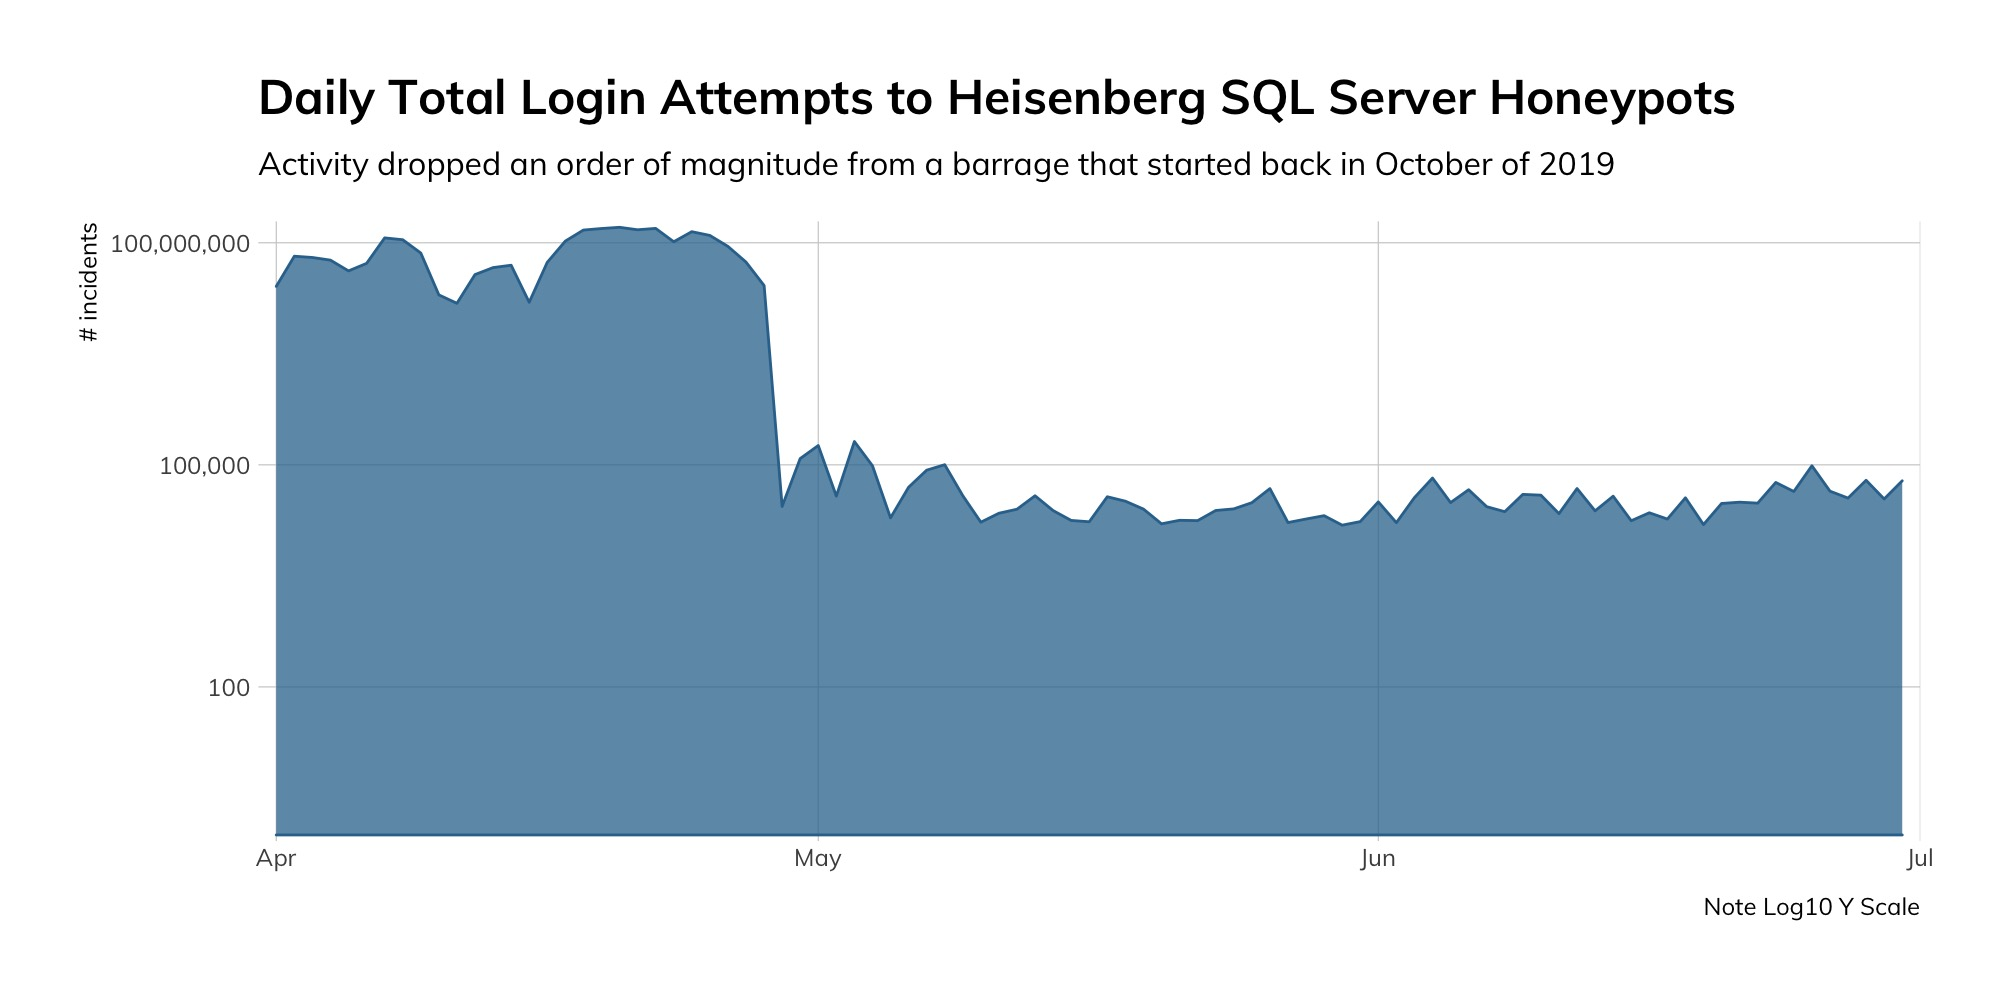 Figure 1: Daily Total Login Attempts to Heisenberg SQL Server Honeypots